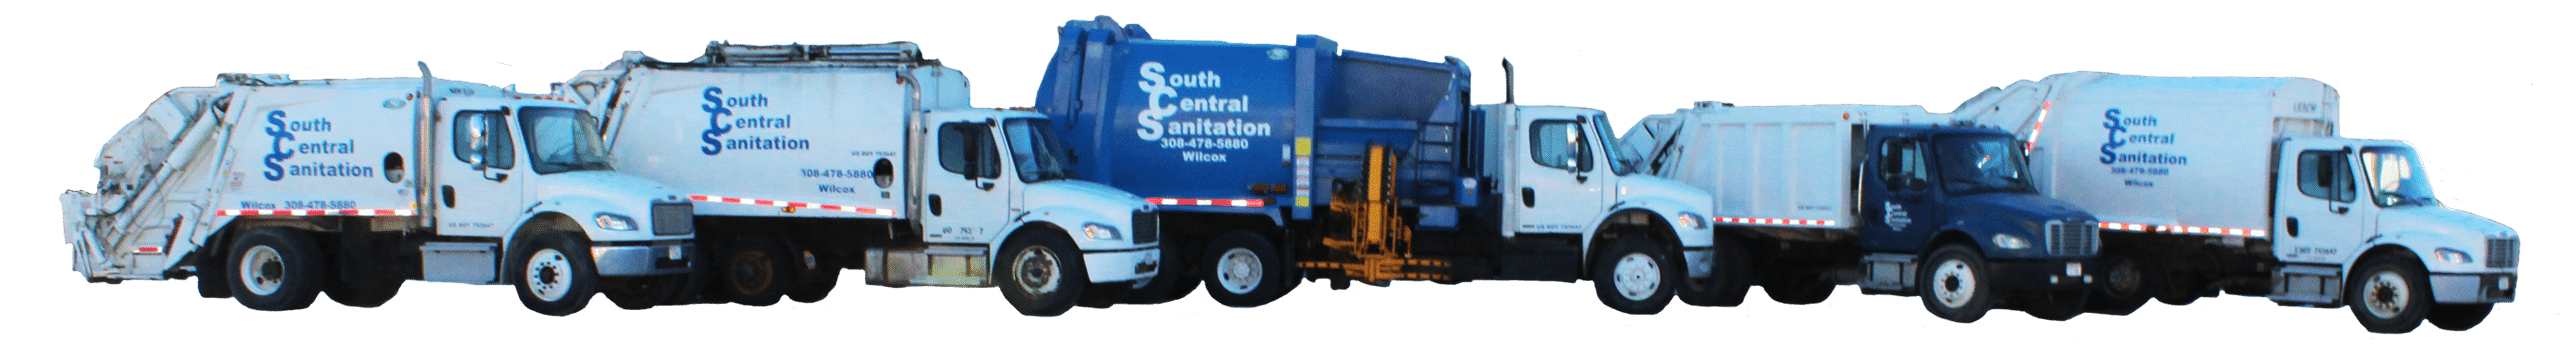 South Central Sanitation garbage trucks